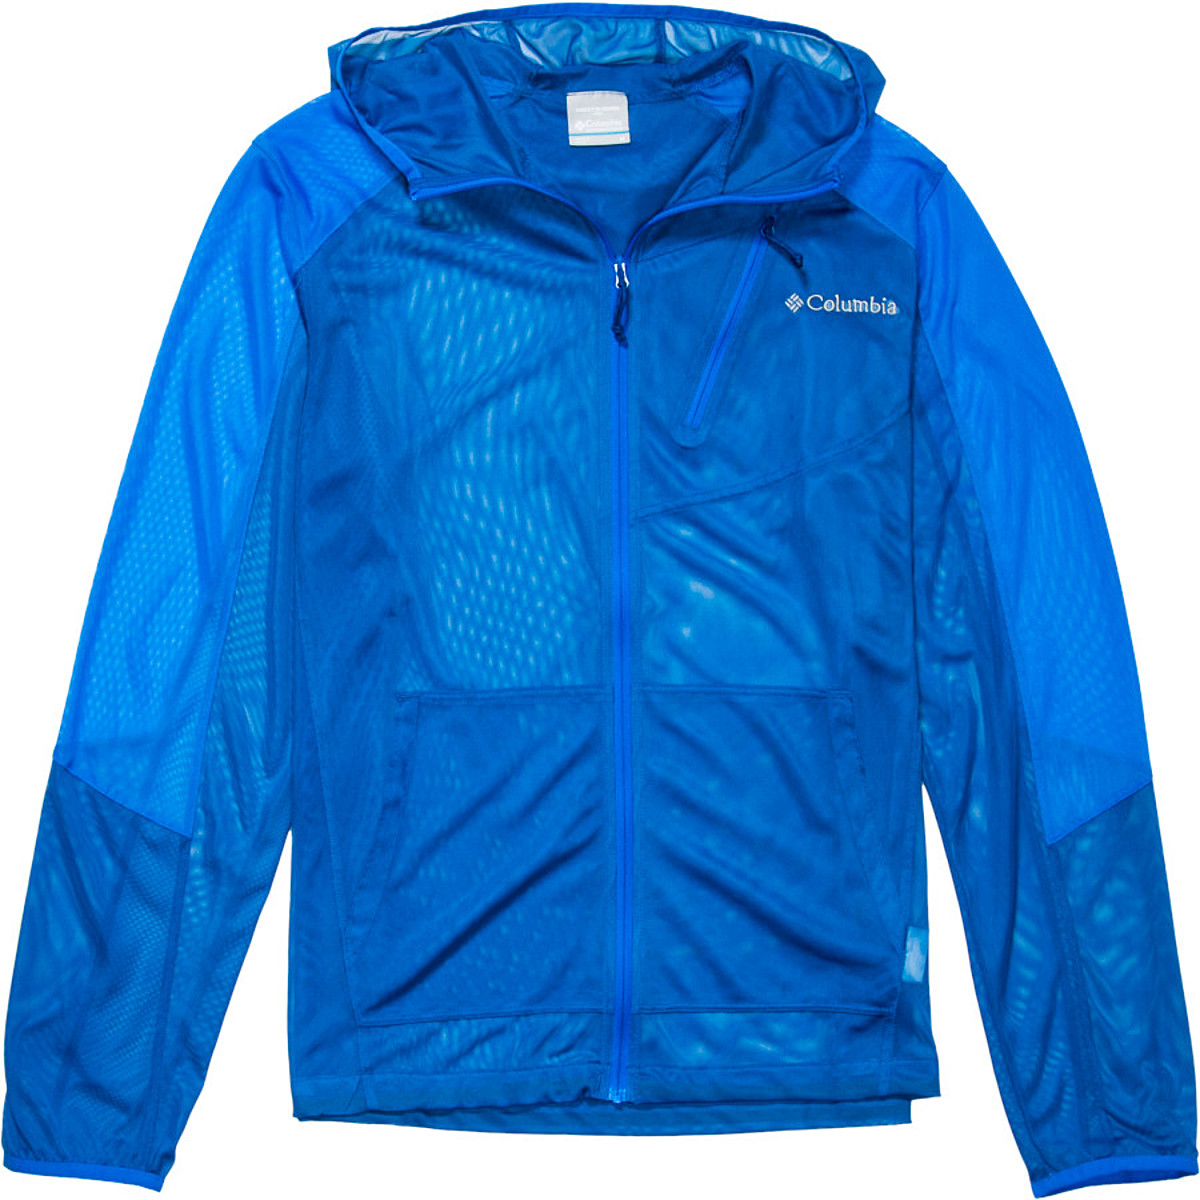 Columbia Bug Shield Mesh Jacket